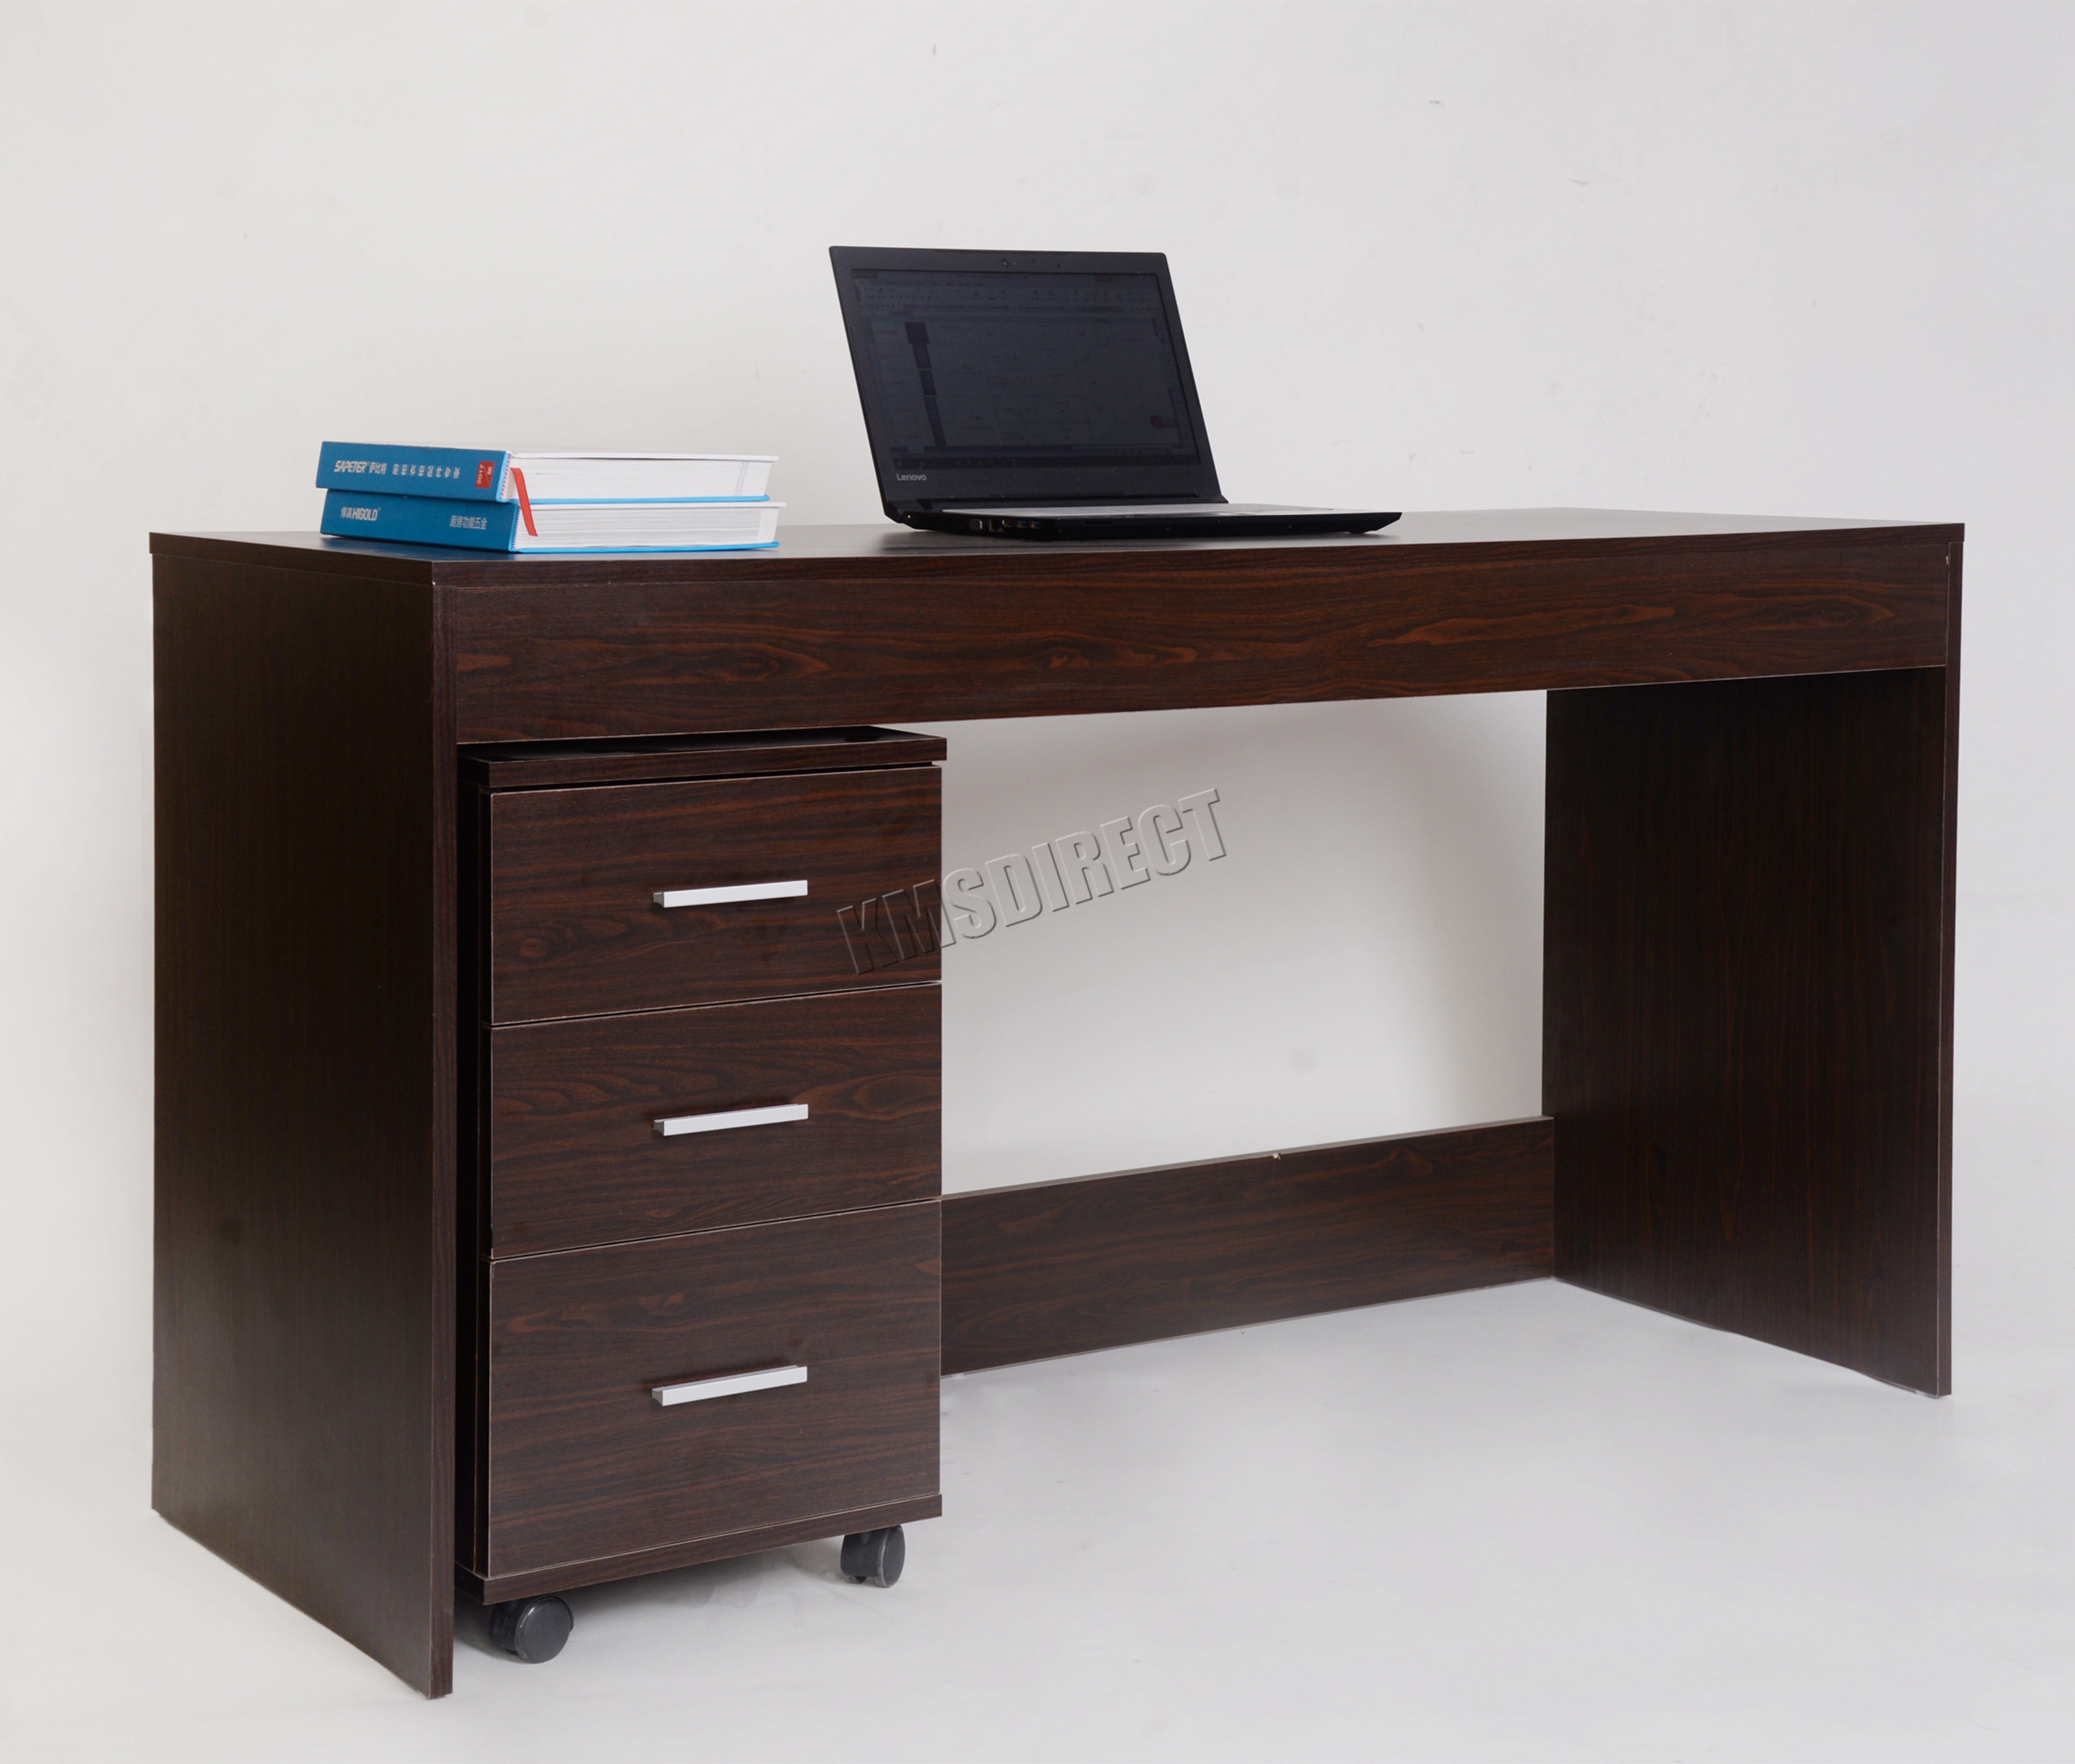 white drawers high desk drawer office unit icarus icw furniture product